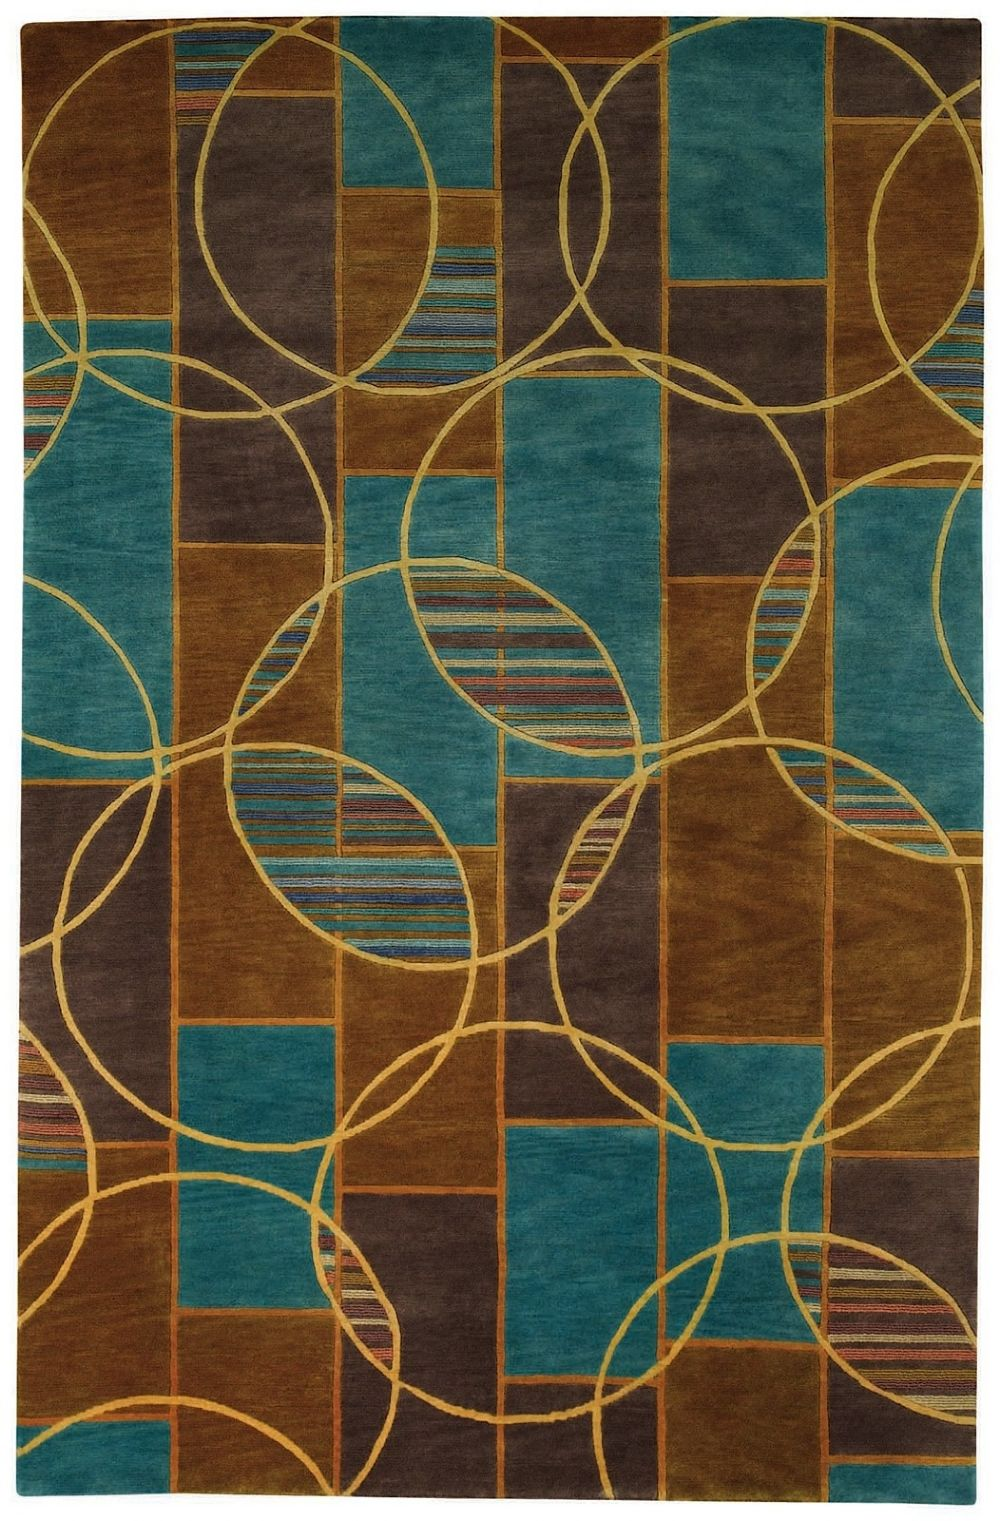 capel crystalle-spheres contemporary area rug collection